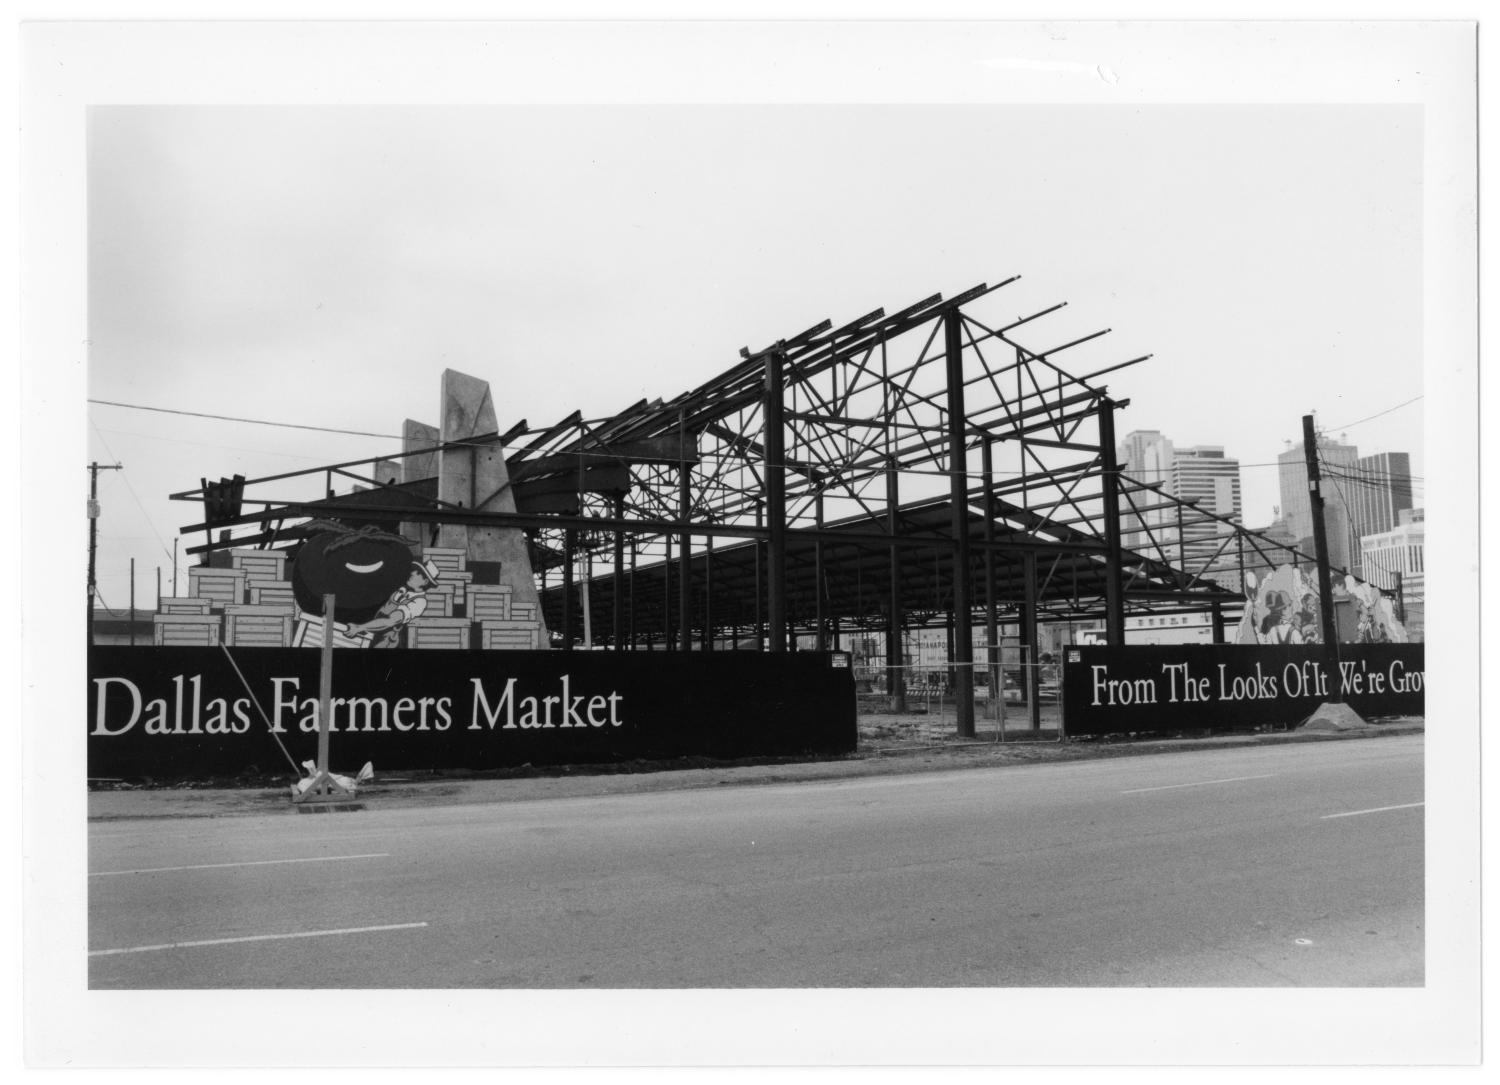 [Construction of Dallas Farmer's Market]                                                                                                      [Sequence #]: 1 of 2